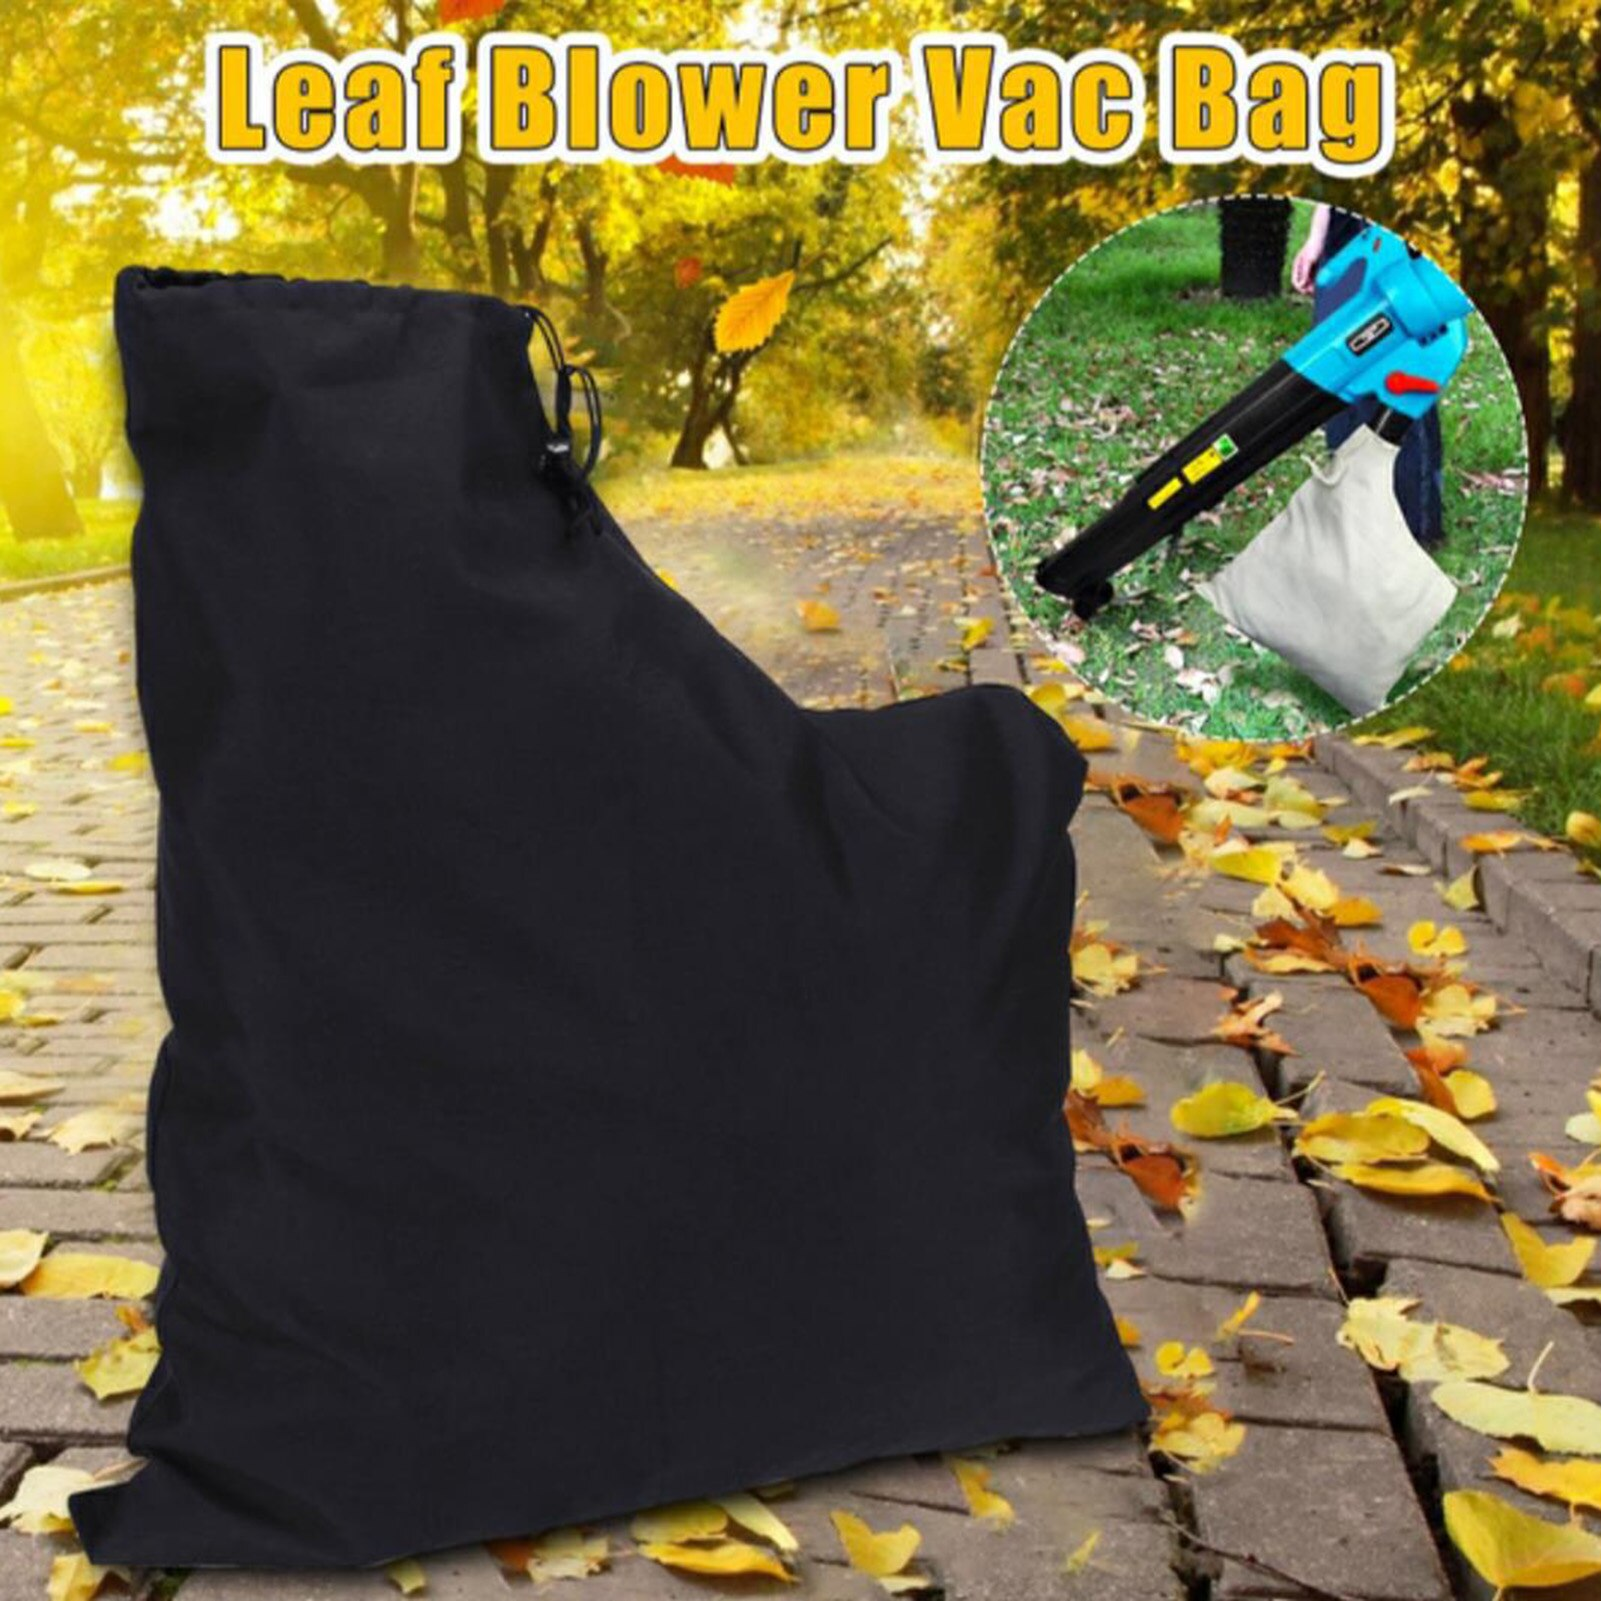 Vacuum Bag Zippered Type Polyester Storage Leaf Blower Dust Collection Lawn Shredder Replacement Sto